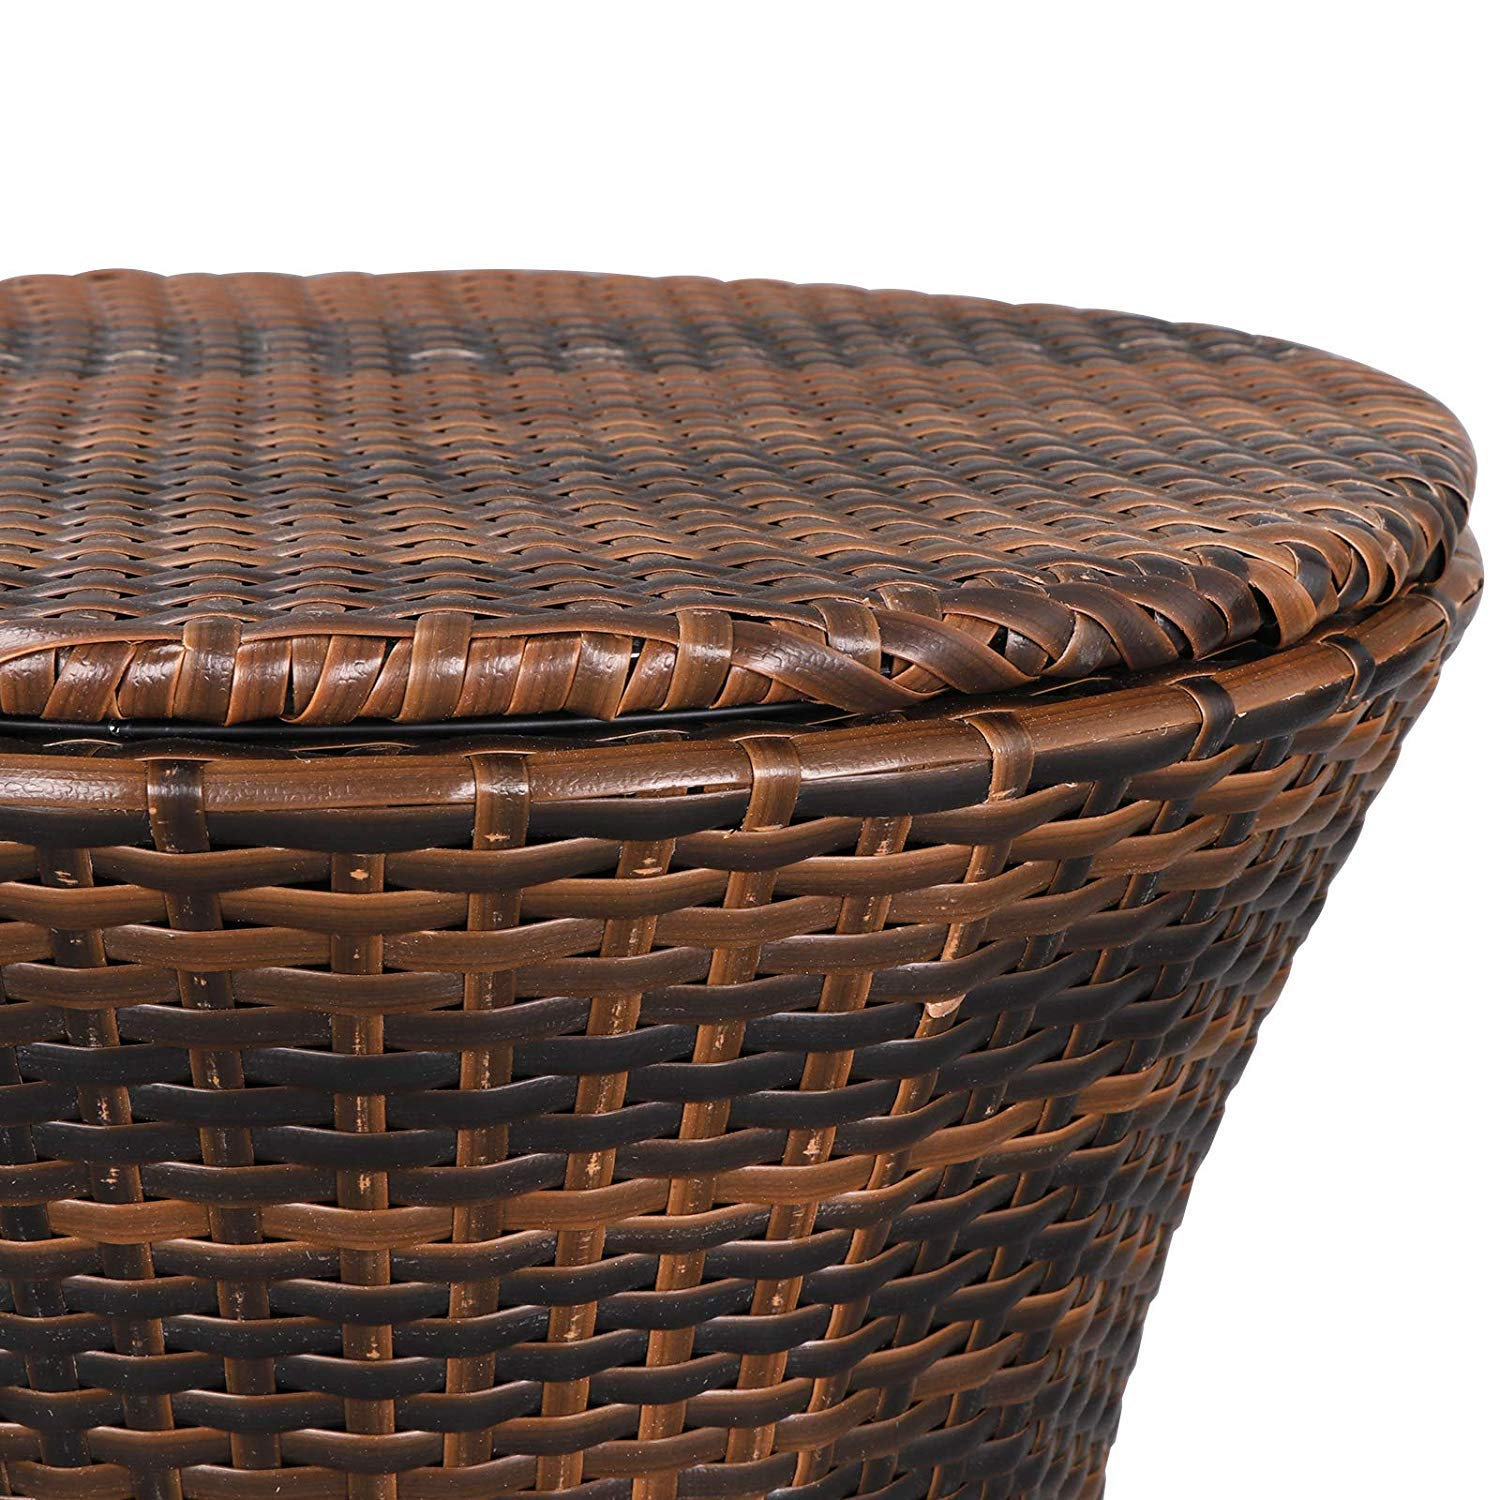 HomGarden Cool Bar Rattan Style Outdoor Patio Cooler Table with Ice Bucket Cocktail Coffee Cooler Table All in One for Party, Pool, Patio, Deck, Backyard by HomGarden